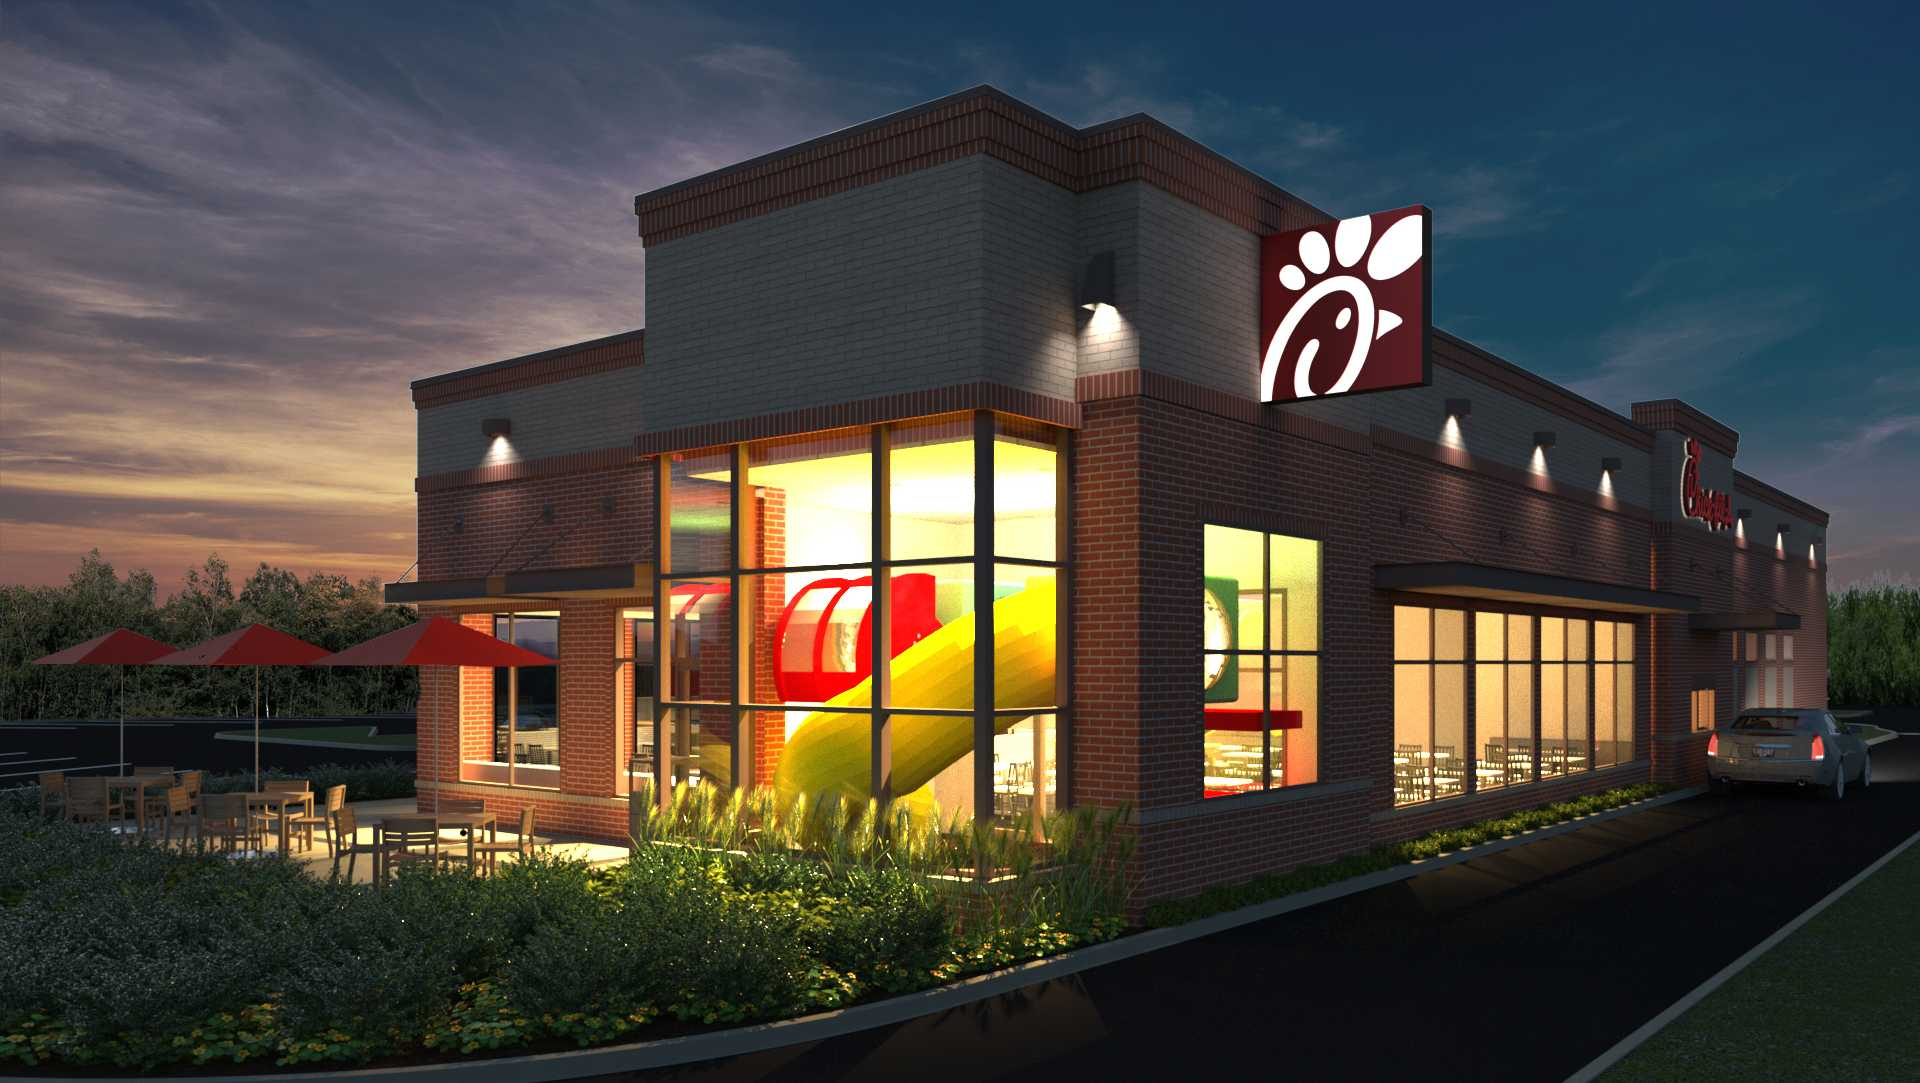 Westbrook Chick-fil-A rendering